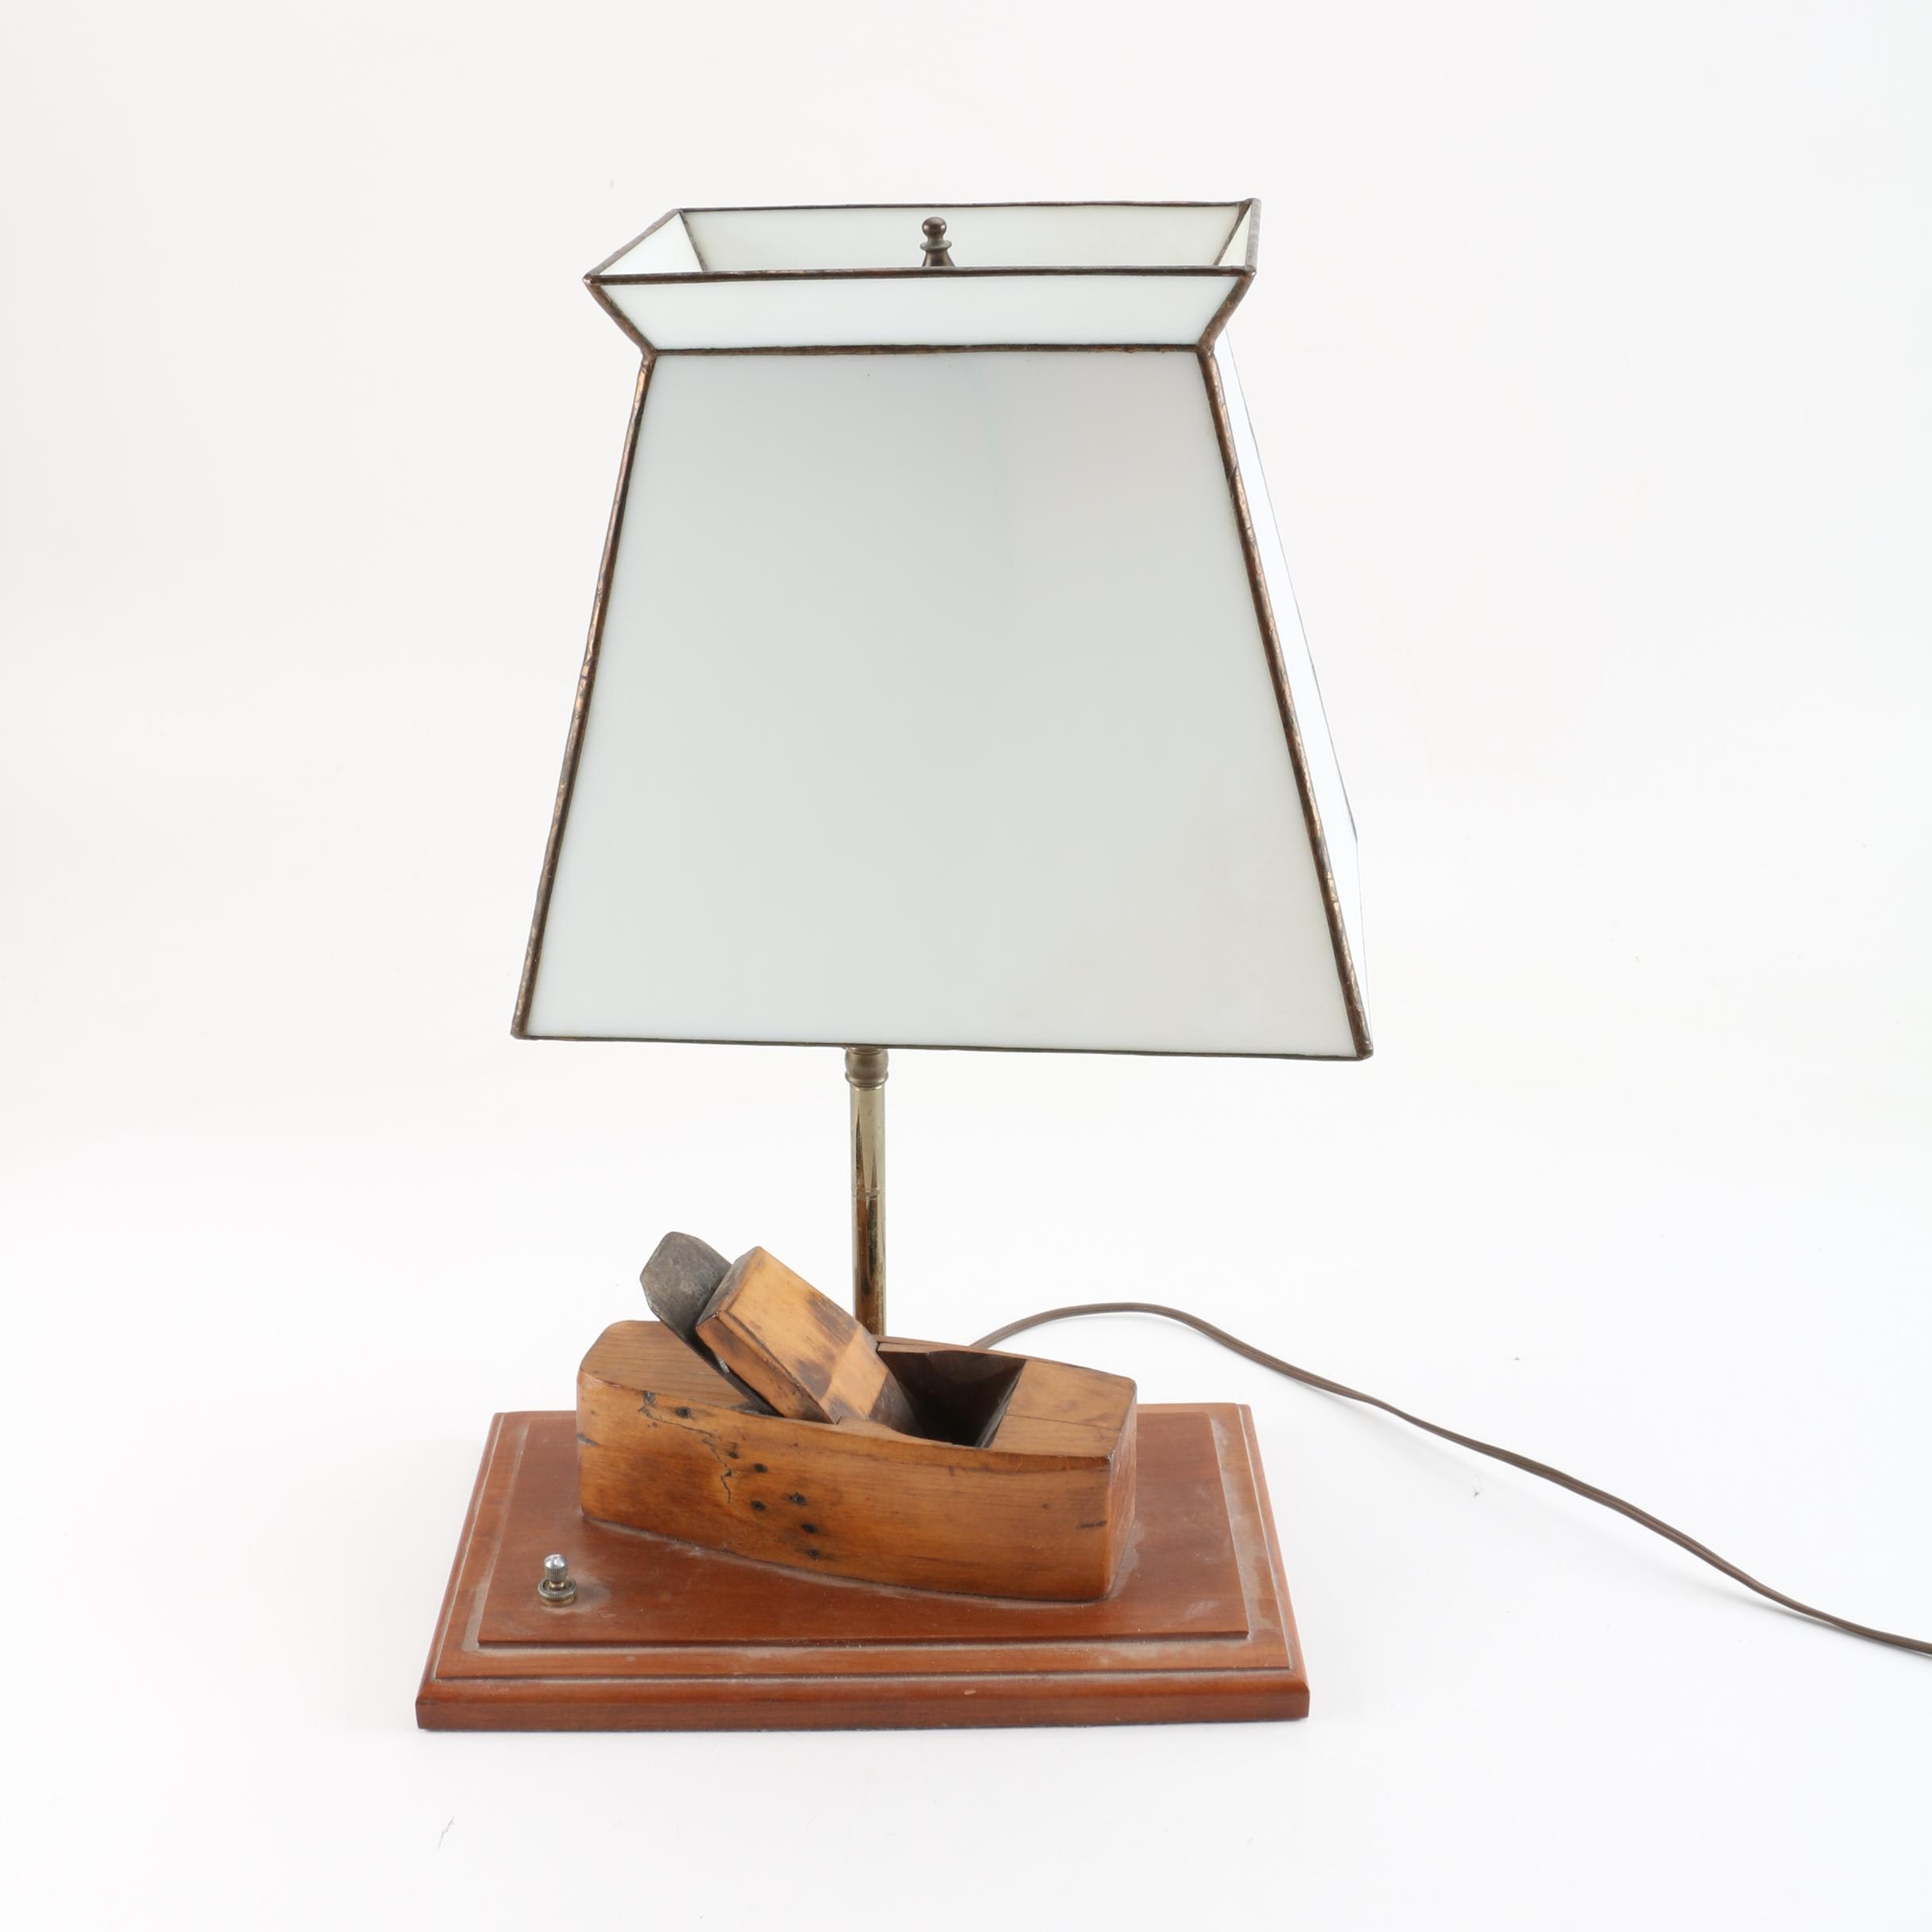 Vintage Wood Plane Table Lamp With Glass Shade